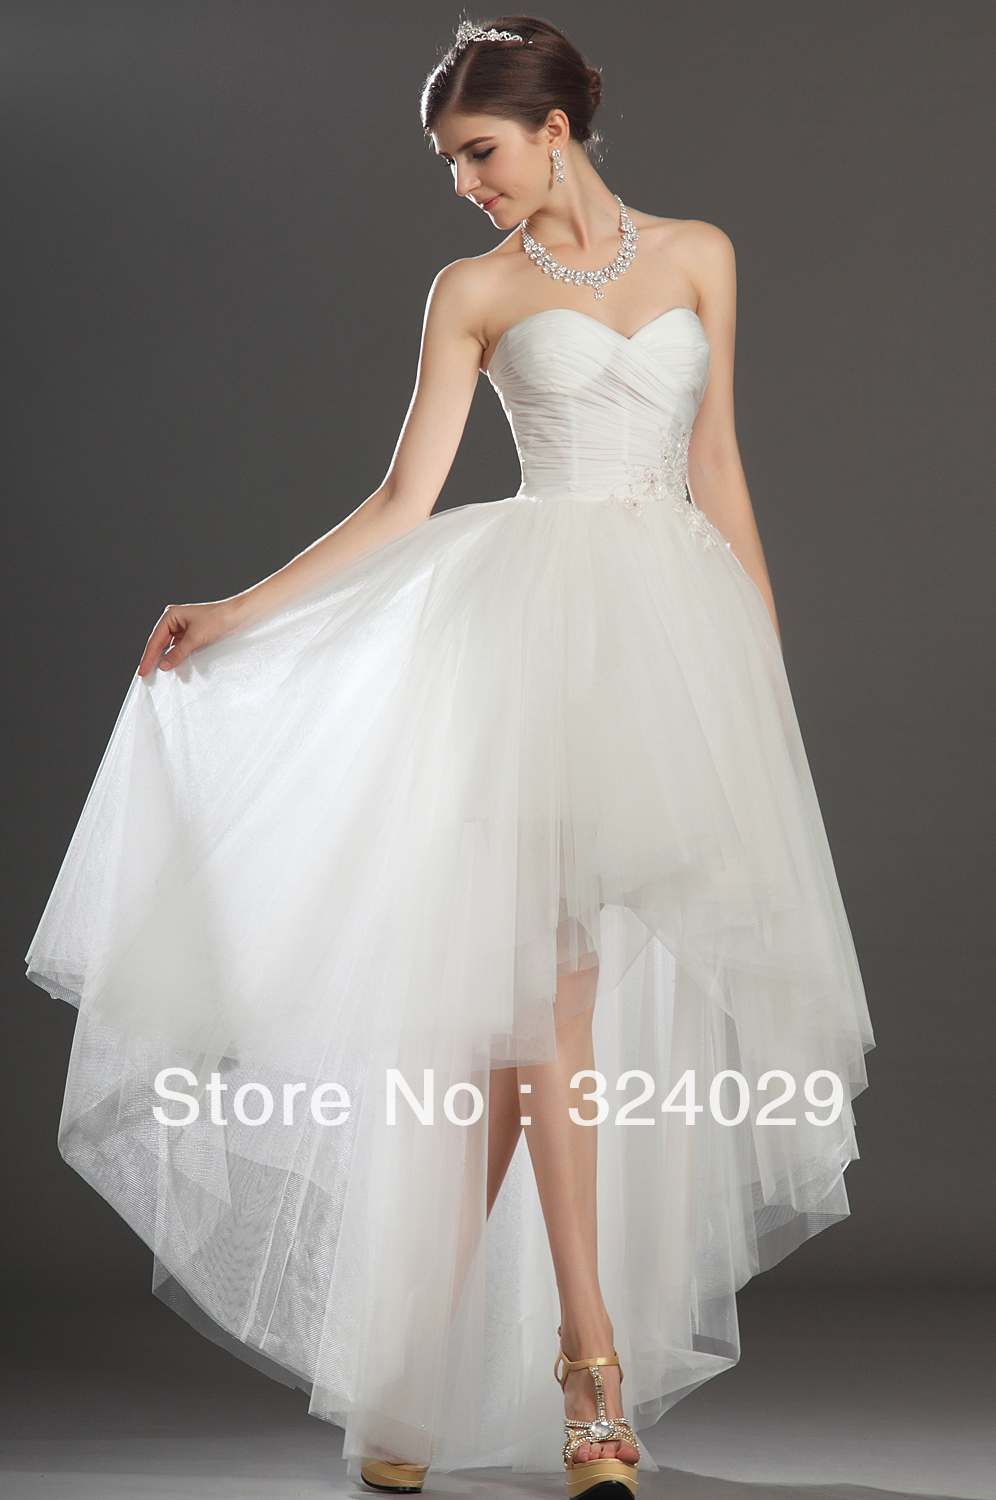 princess anastasia wedding dress reception wedding dresses Anastasia Is A Perfect Gown For Both Ceremony And Reception This